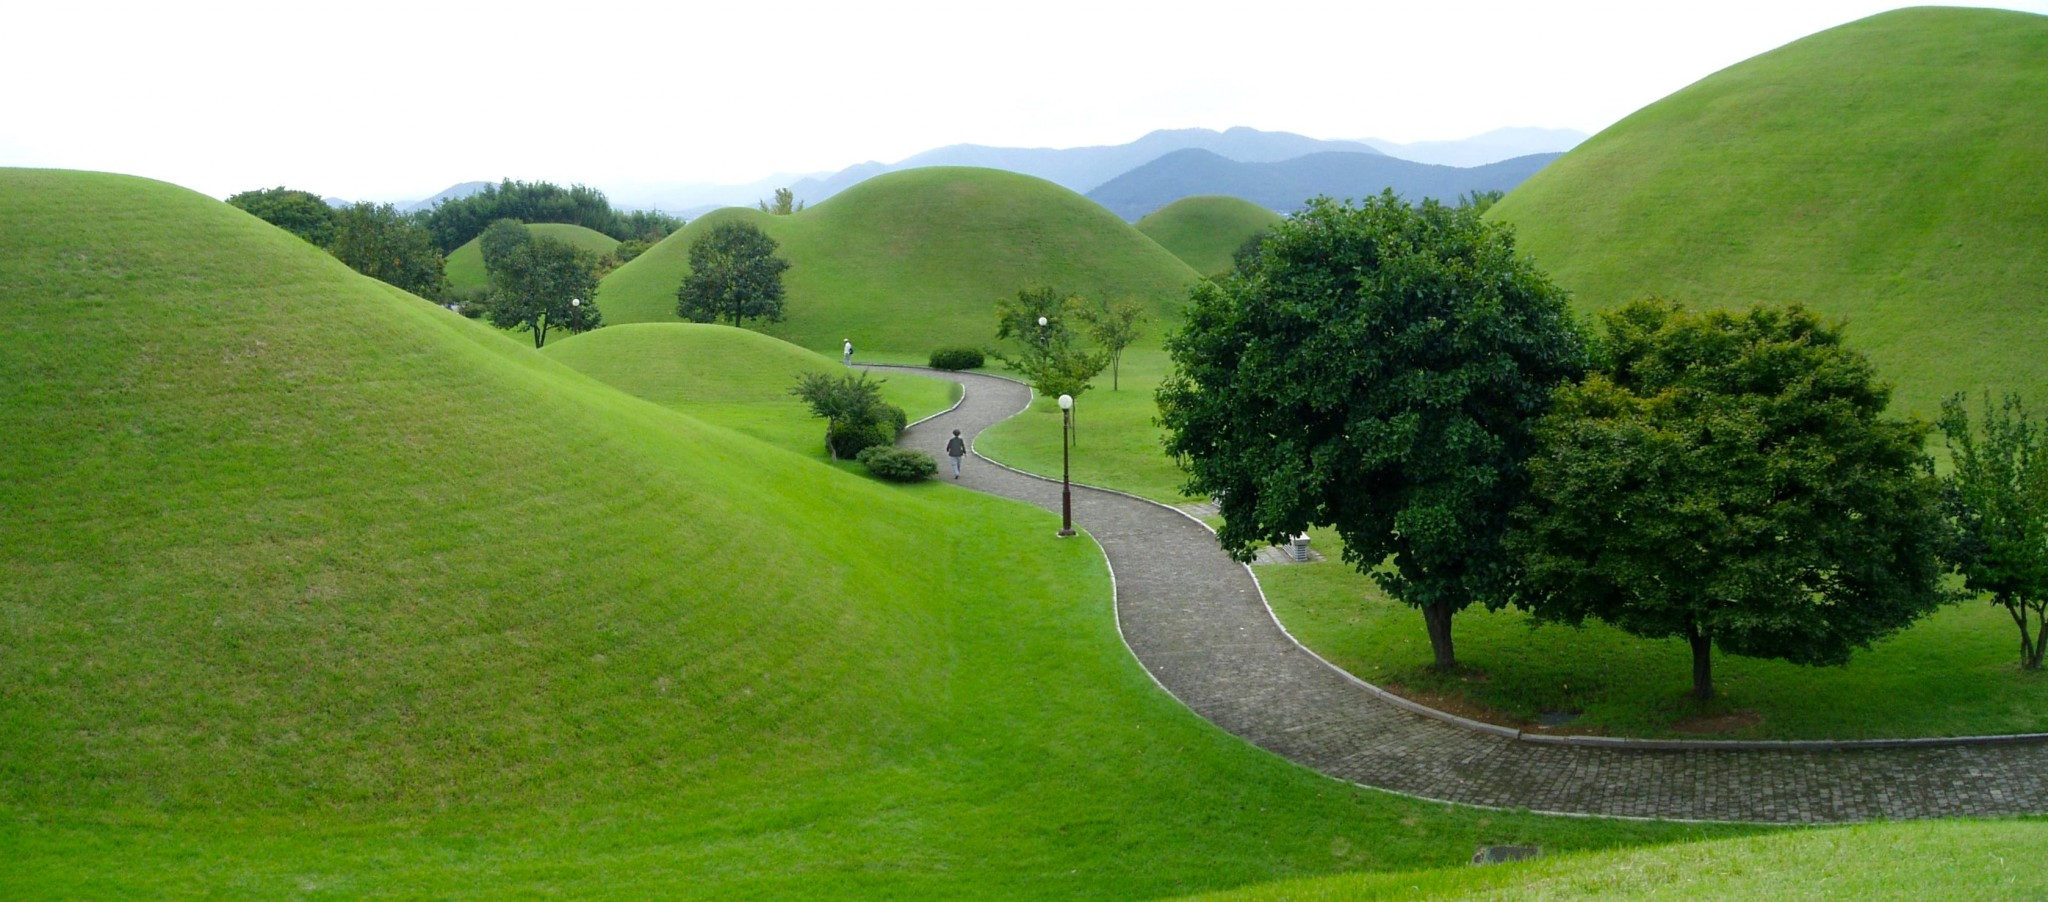 Gyeongju_-_King_Tomb_Park_-_panoramio